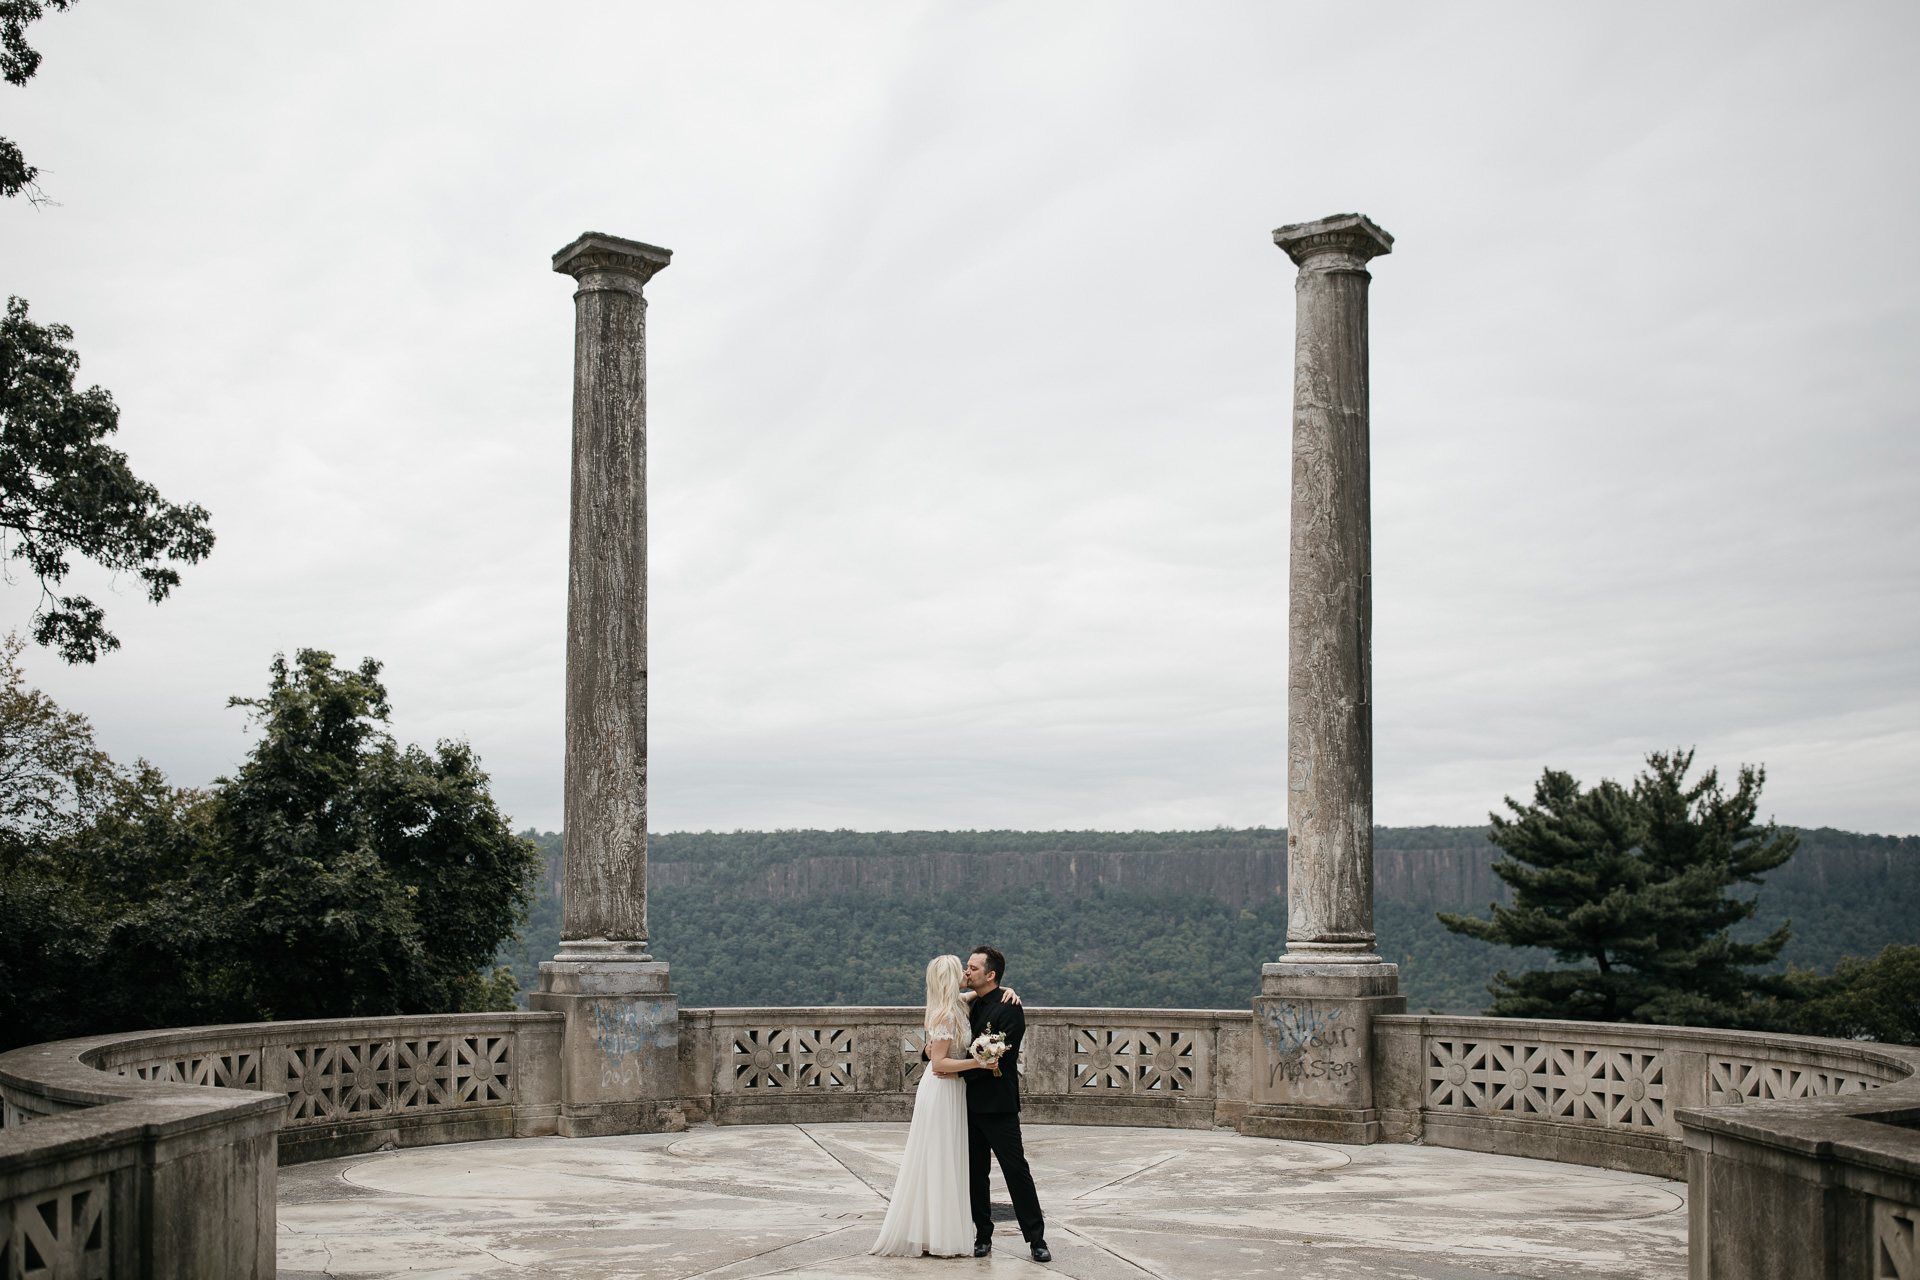 Elopement Untermyer Gardens in New York City by Jean-Laurent Gaudy